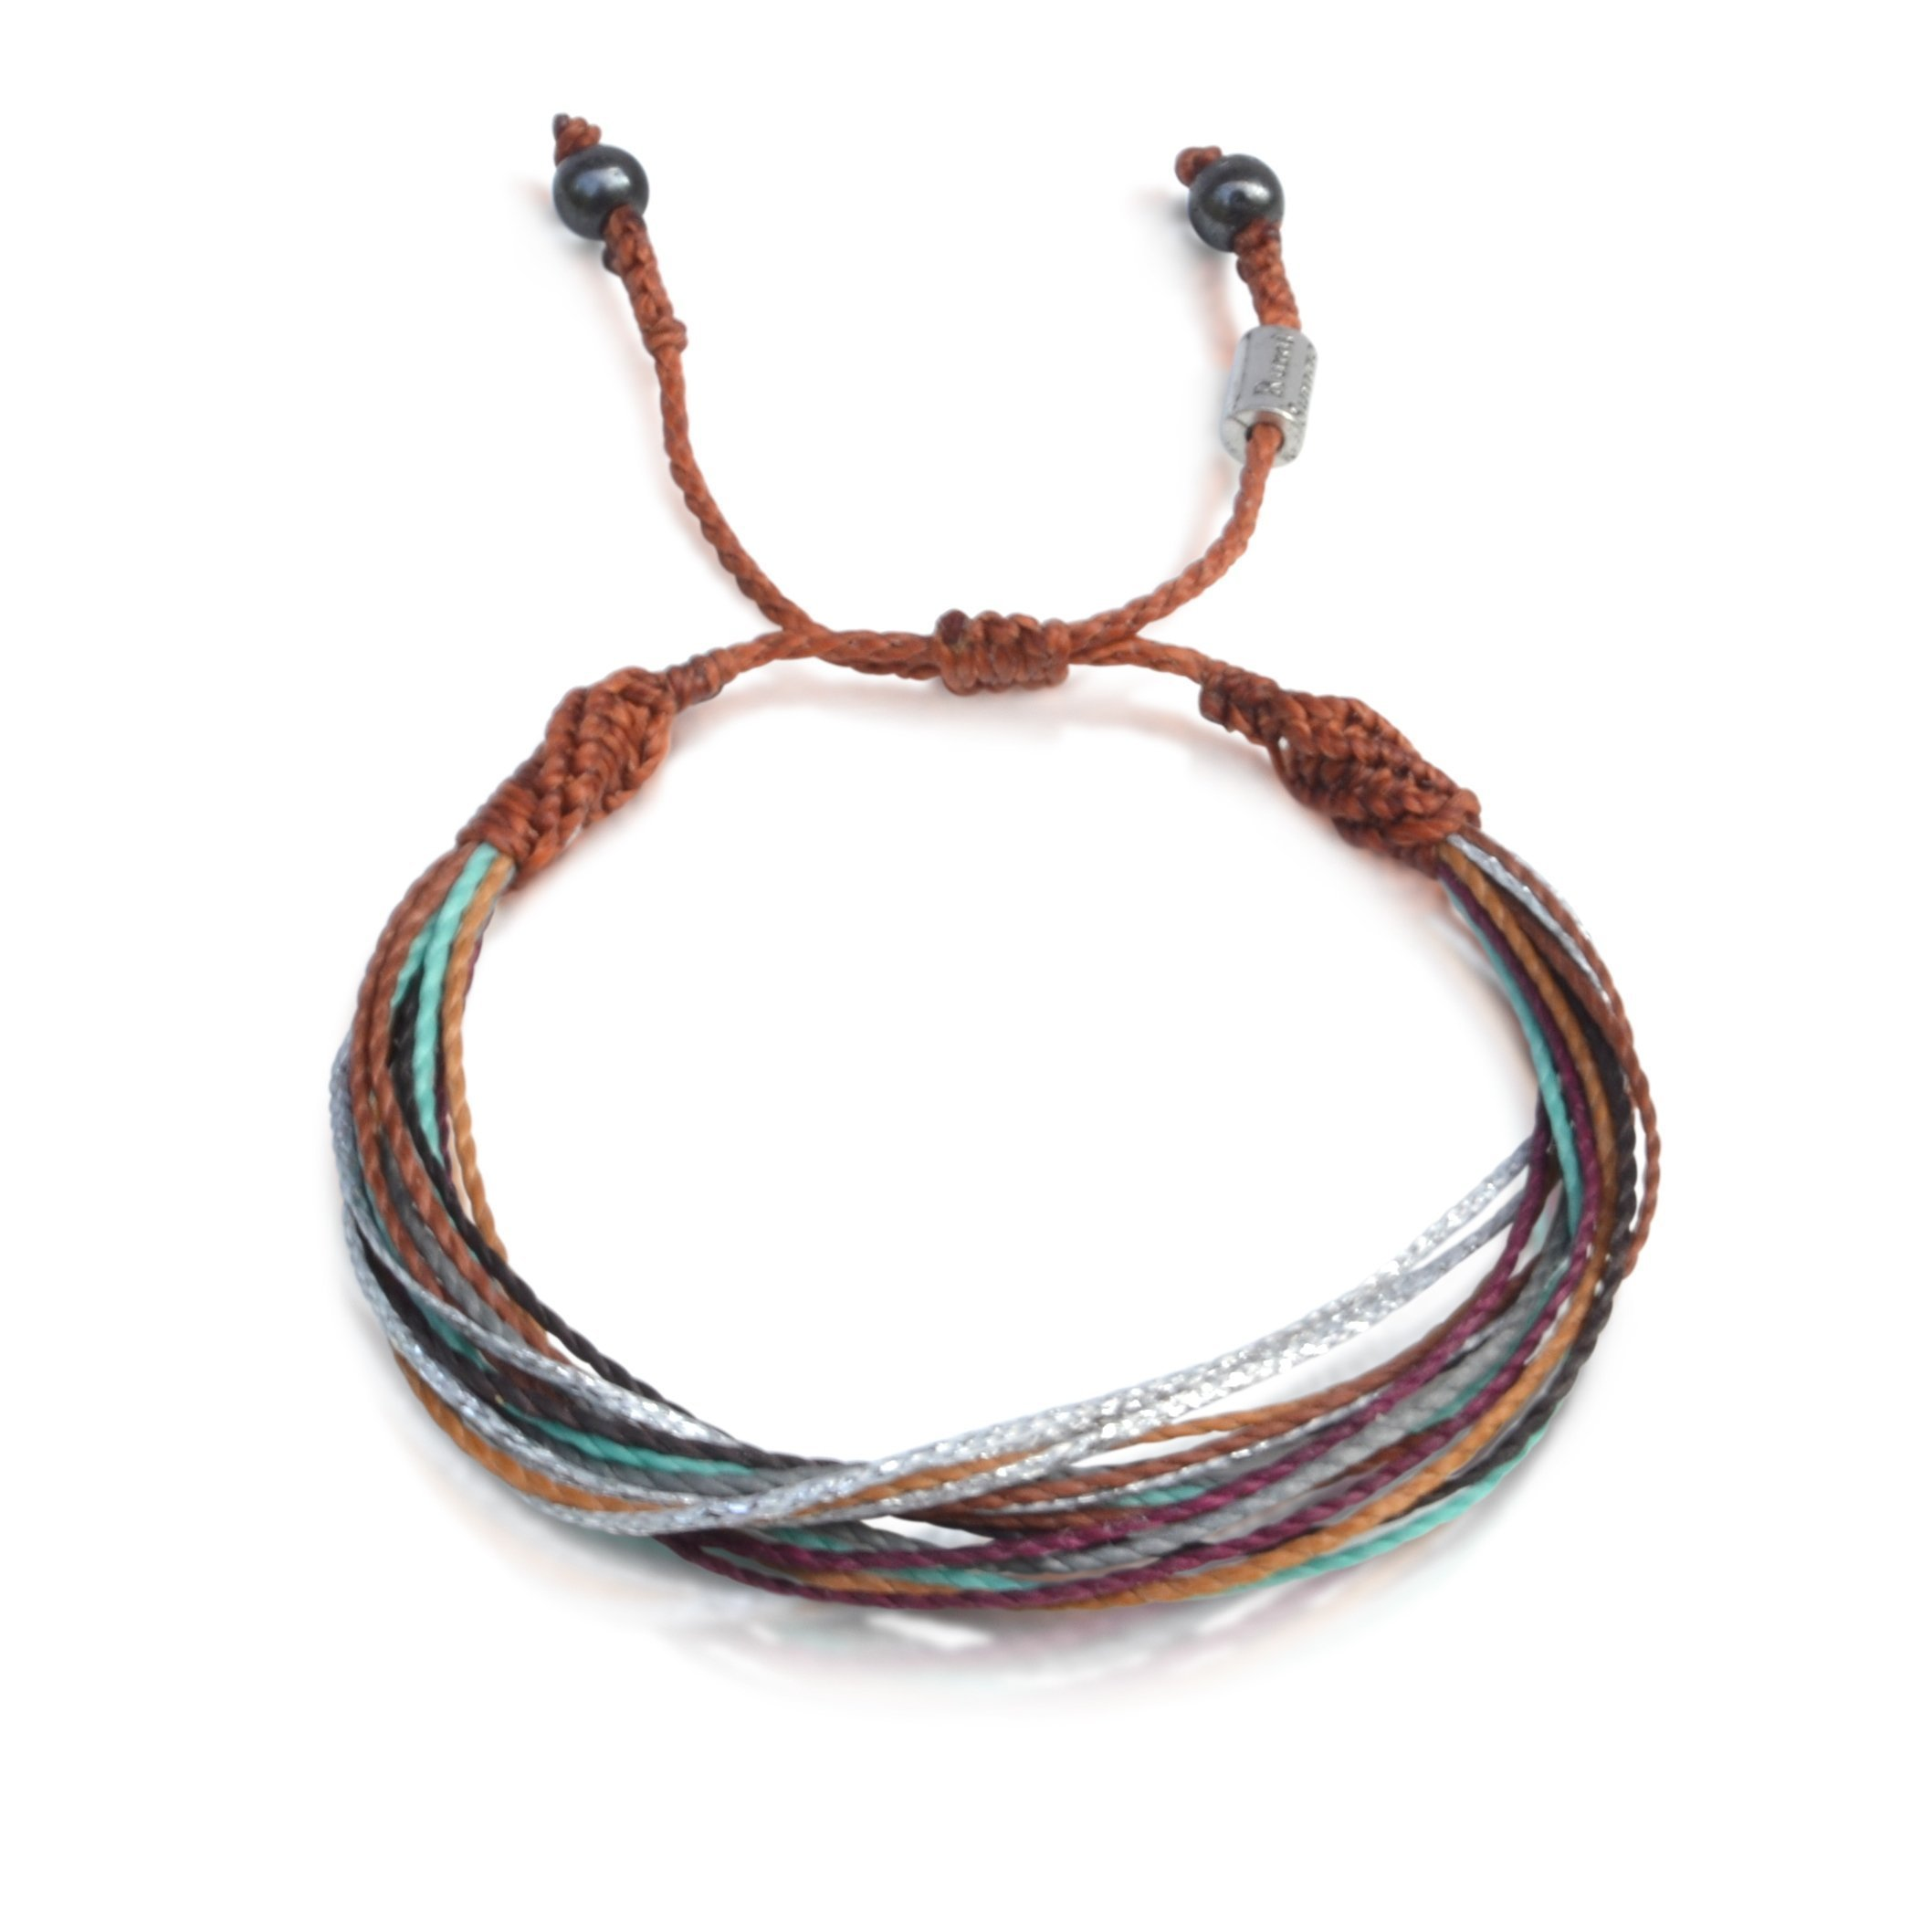 String Surf Beach Bracelet for Men and Women with Hematite Stones in Brown, Rust, Eggplant, Aqua, Grey and Metallic Silver: Handmade Rope Friendship Bracelet by Rumi Sumaq